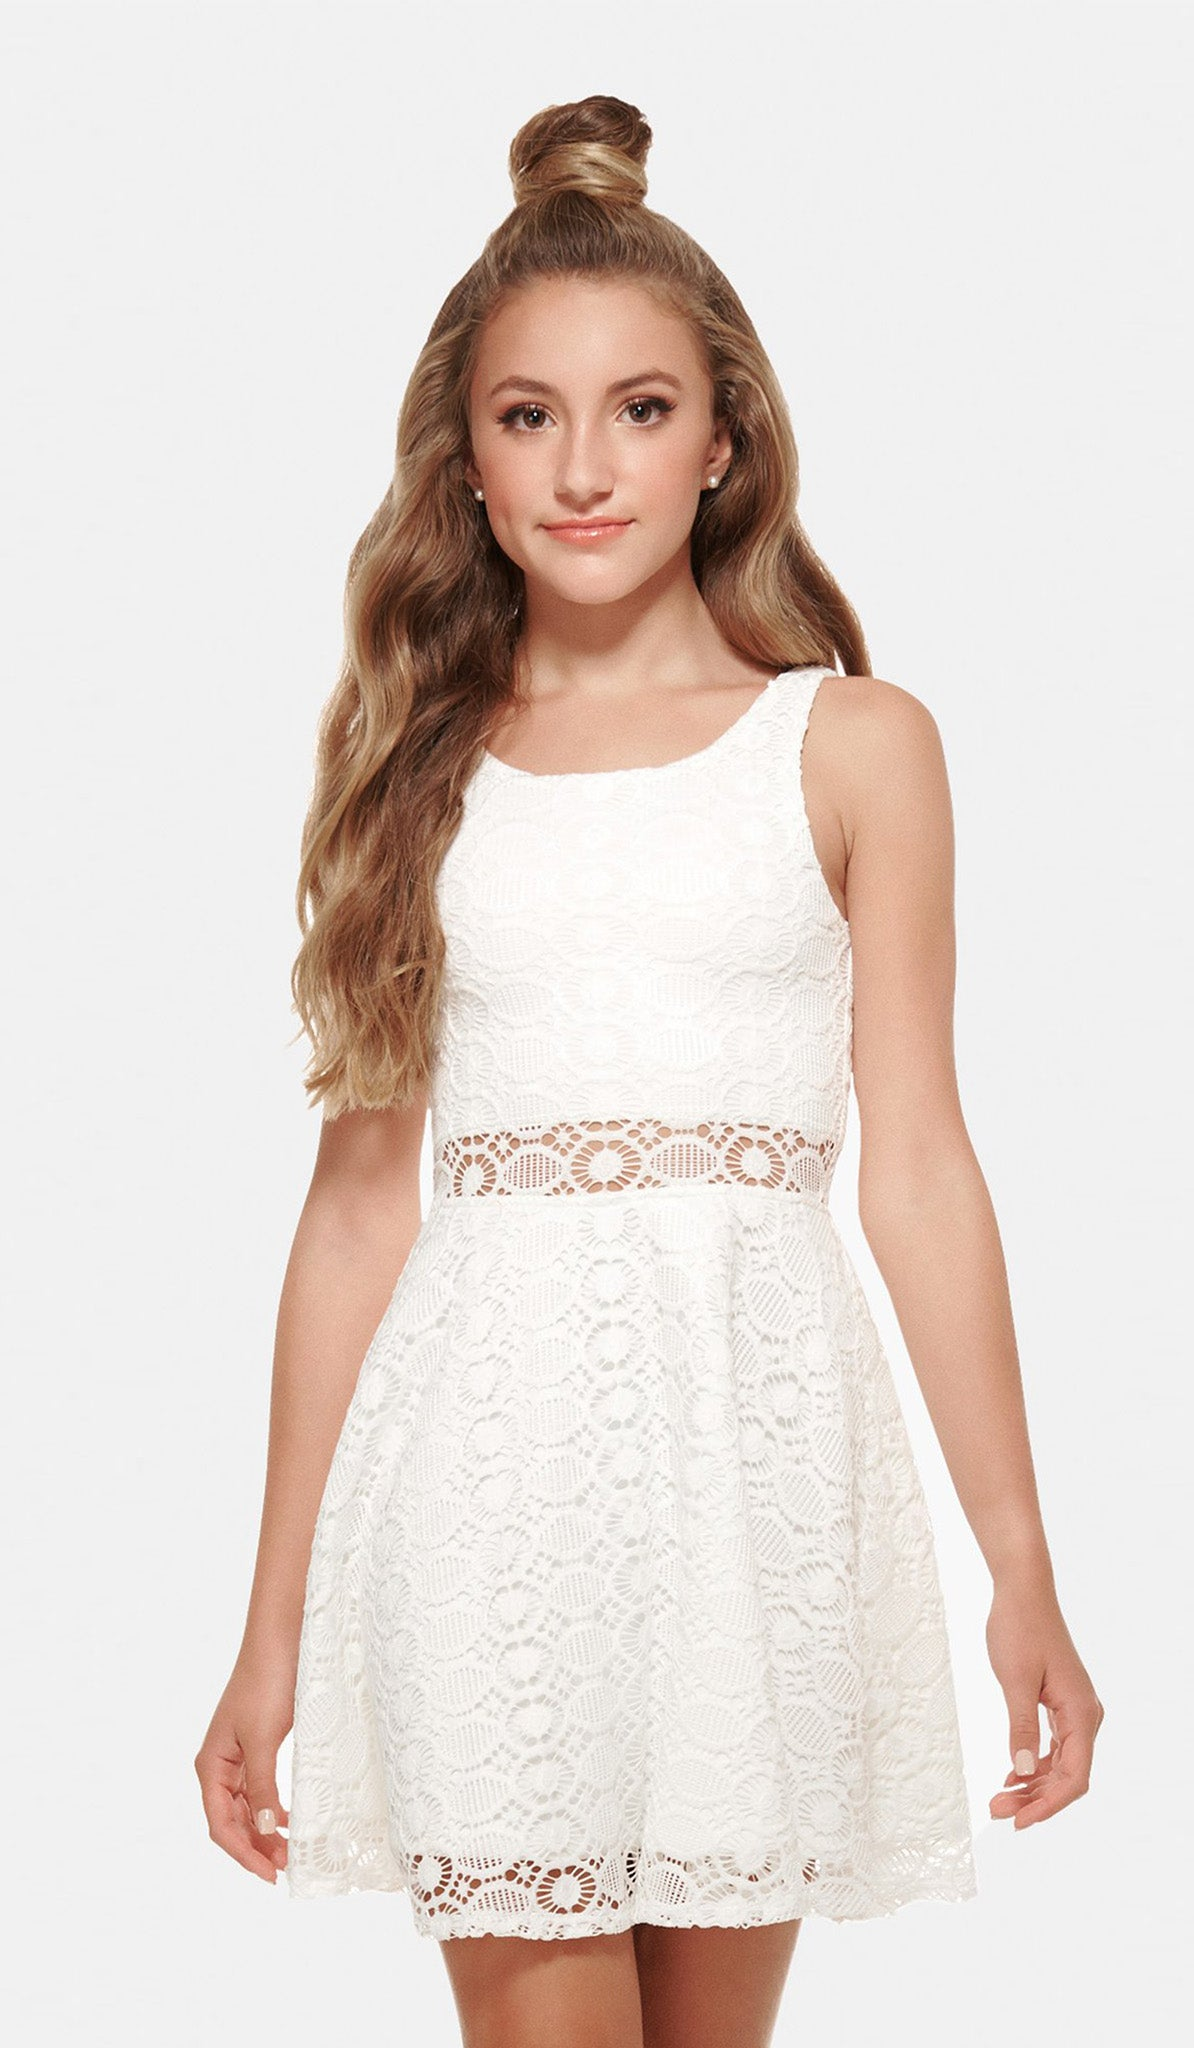 The Sally Miller Nancy Dress - Ivory crochet lace fit and flare dress with illusion waist